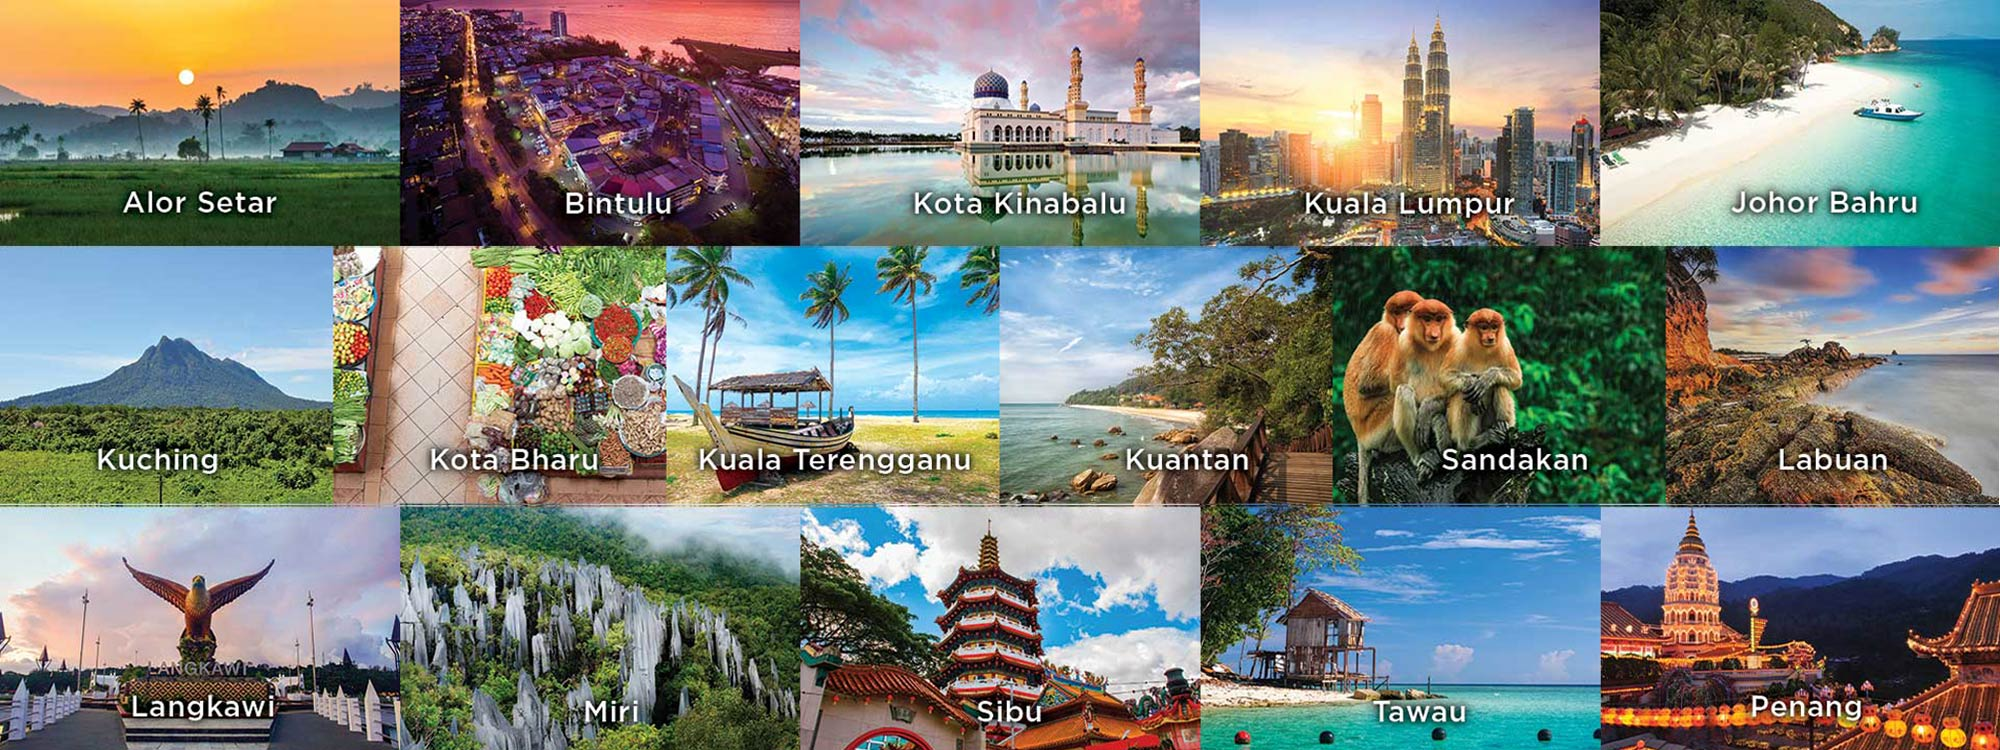 Malaysia Airlines 24 Hours Flash Deals DOM Destinations